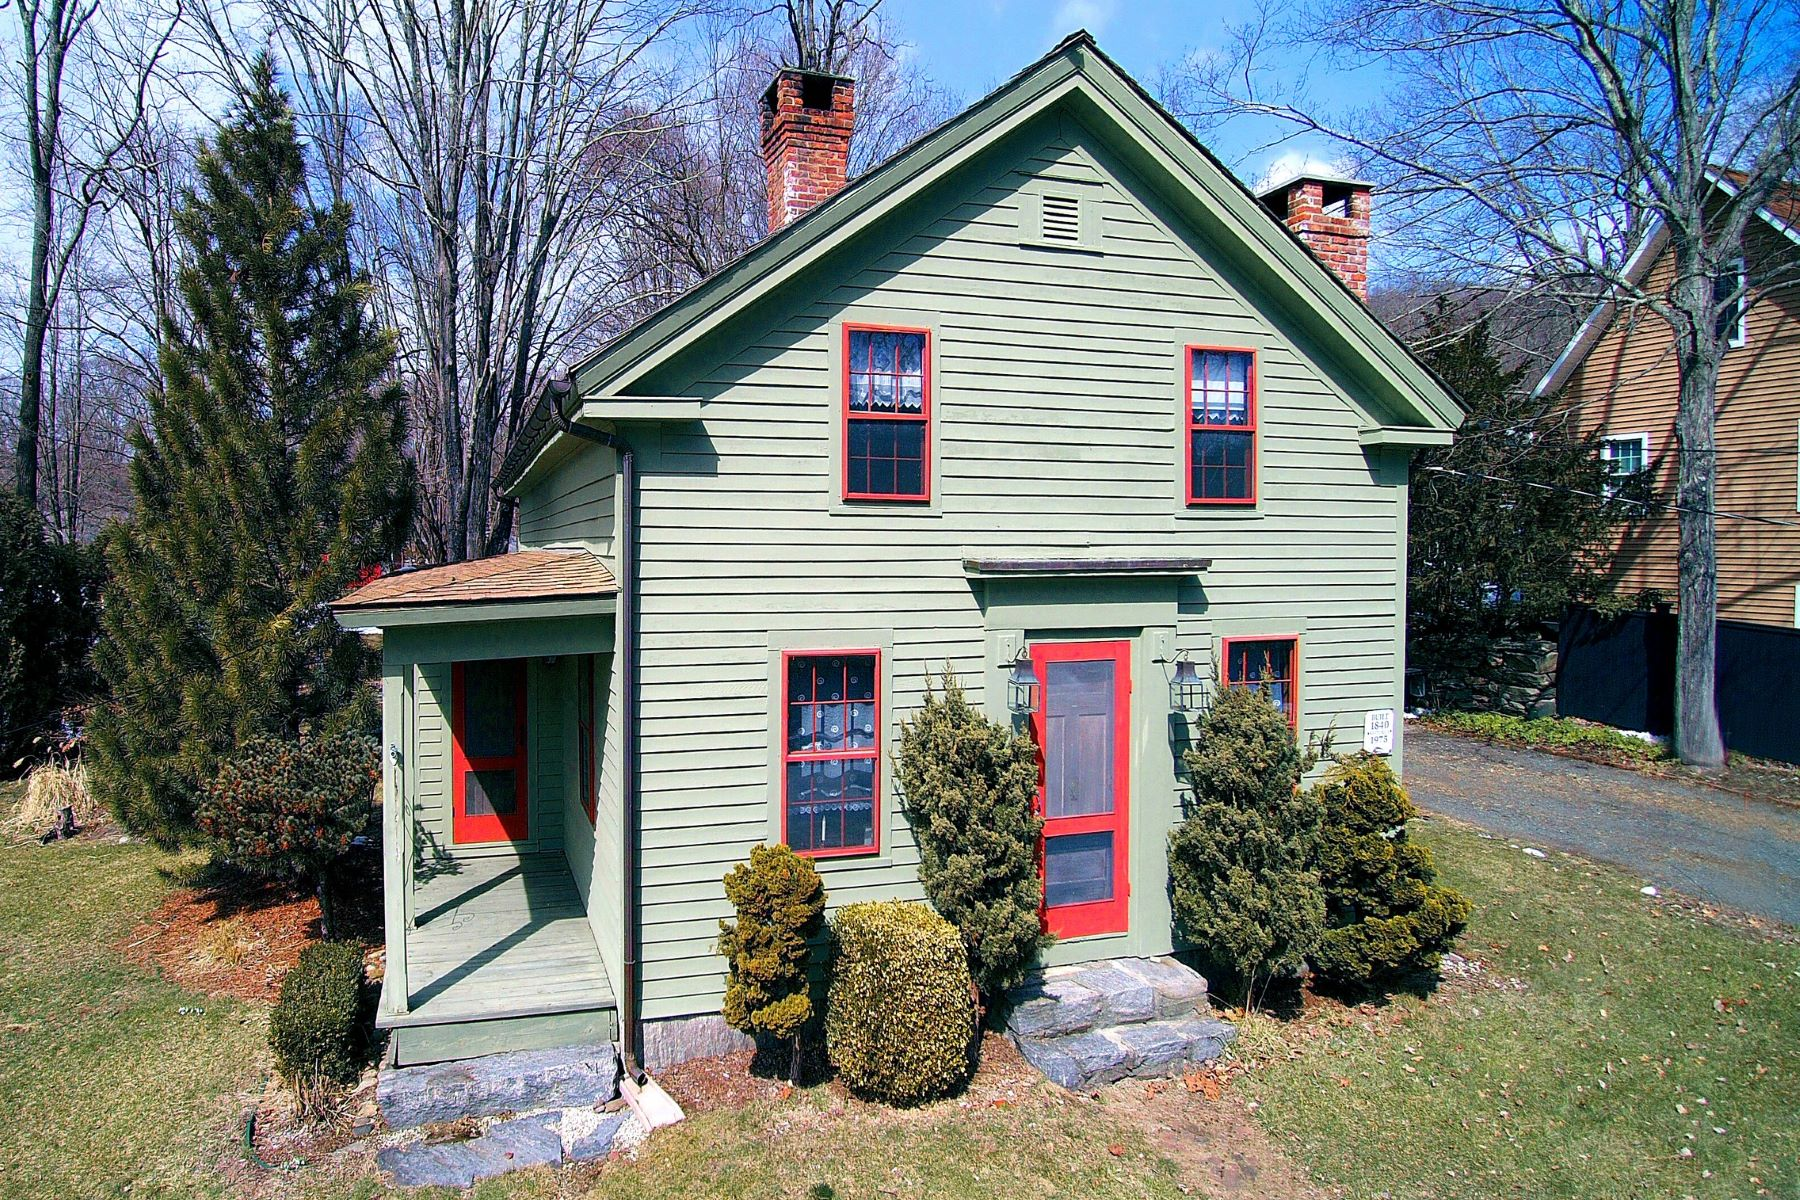 Casa Unifamiliar por un Venta en True Gem Built in 1840 236 Quassuk Road Woodbury, Connecticut 06798 Estados Unidos